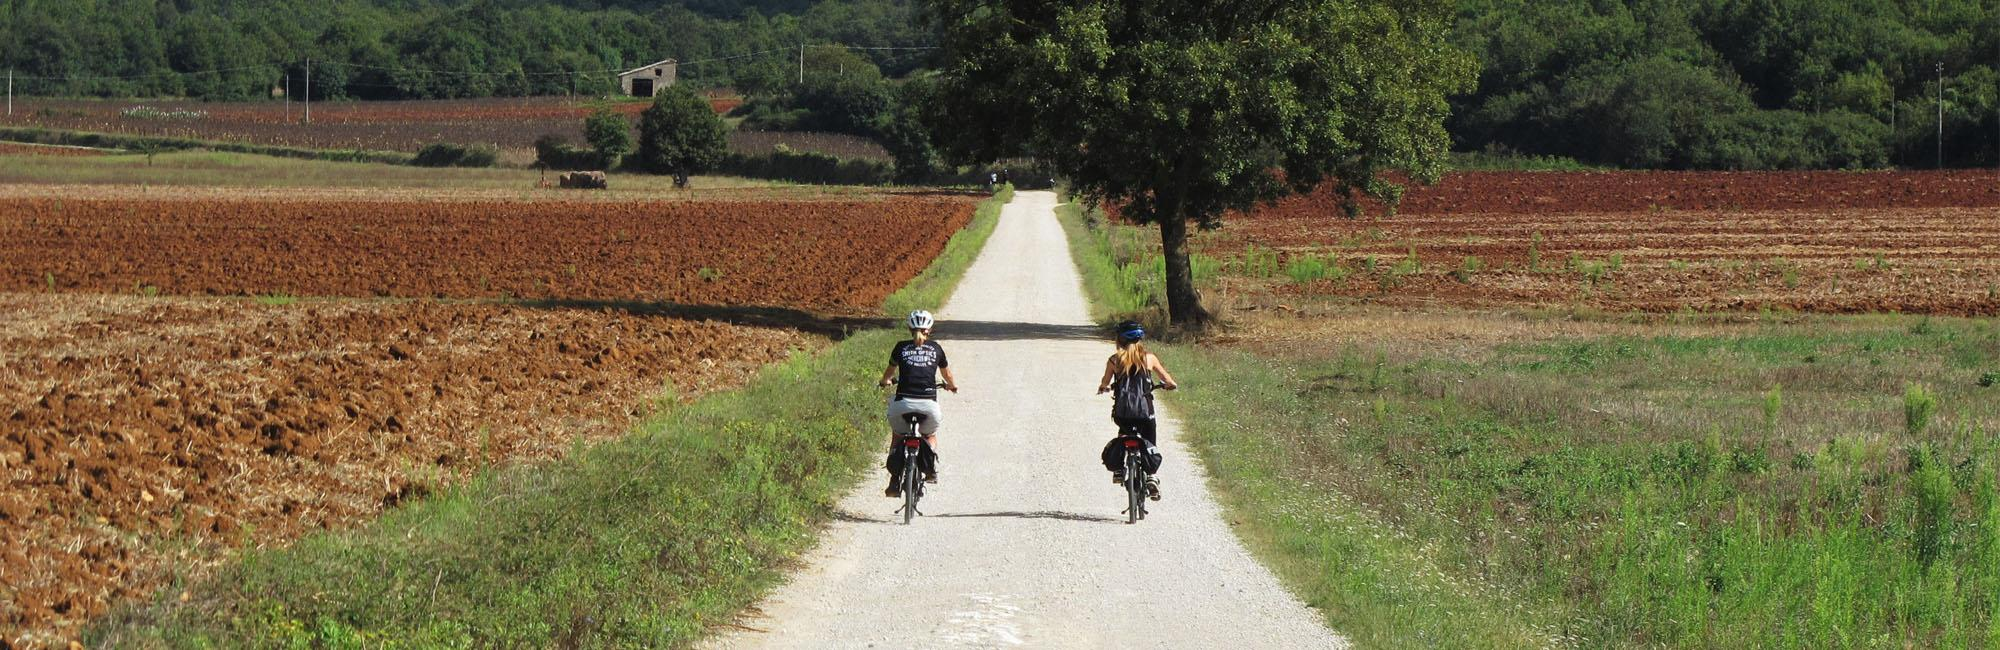 Cycling the Via Francigena